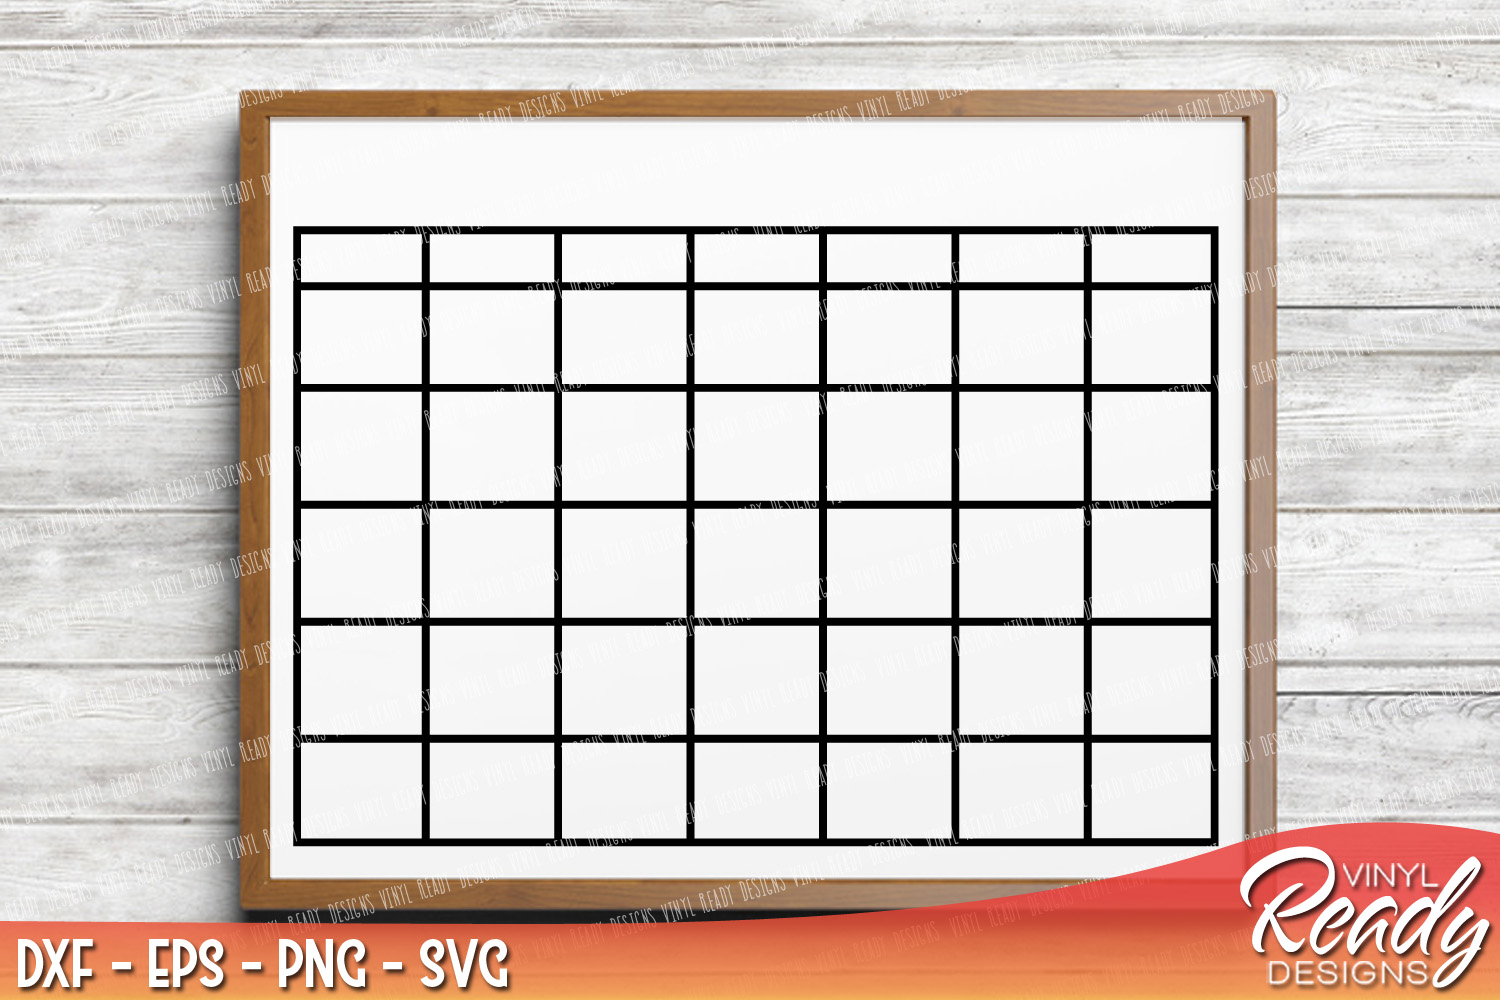 Blank Calendar Svg : Monthly calendar blank template vecto design bundles